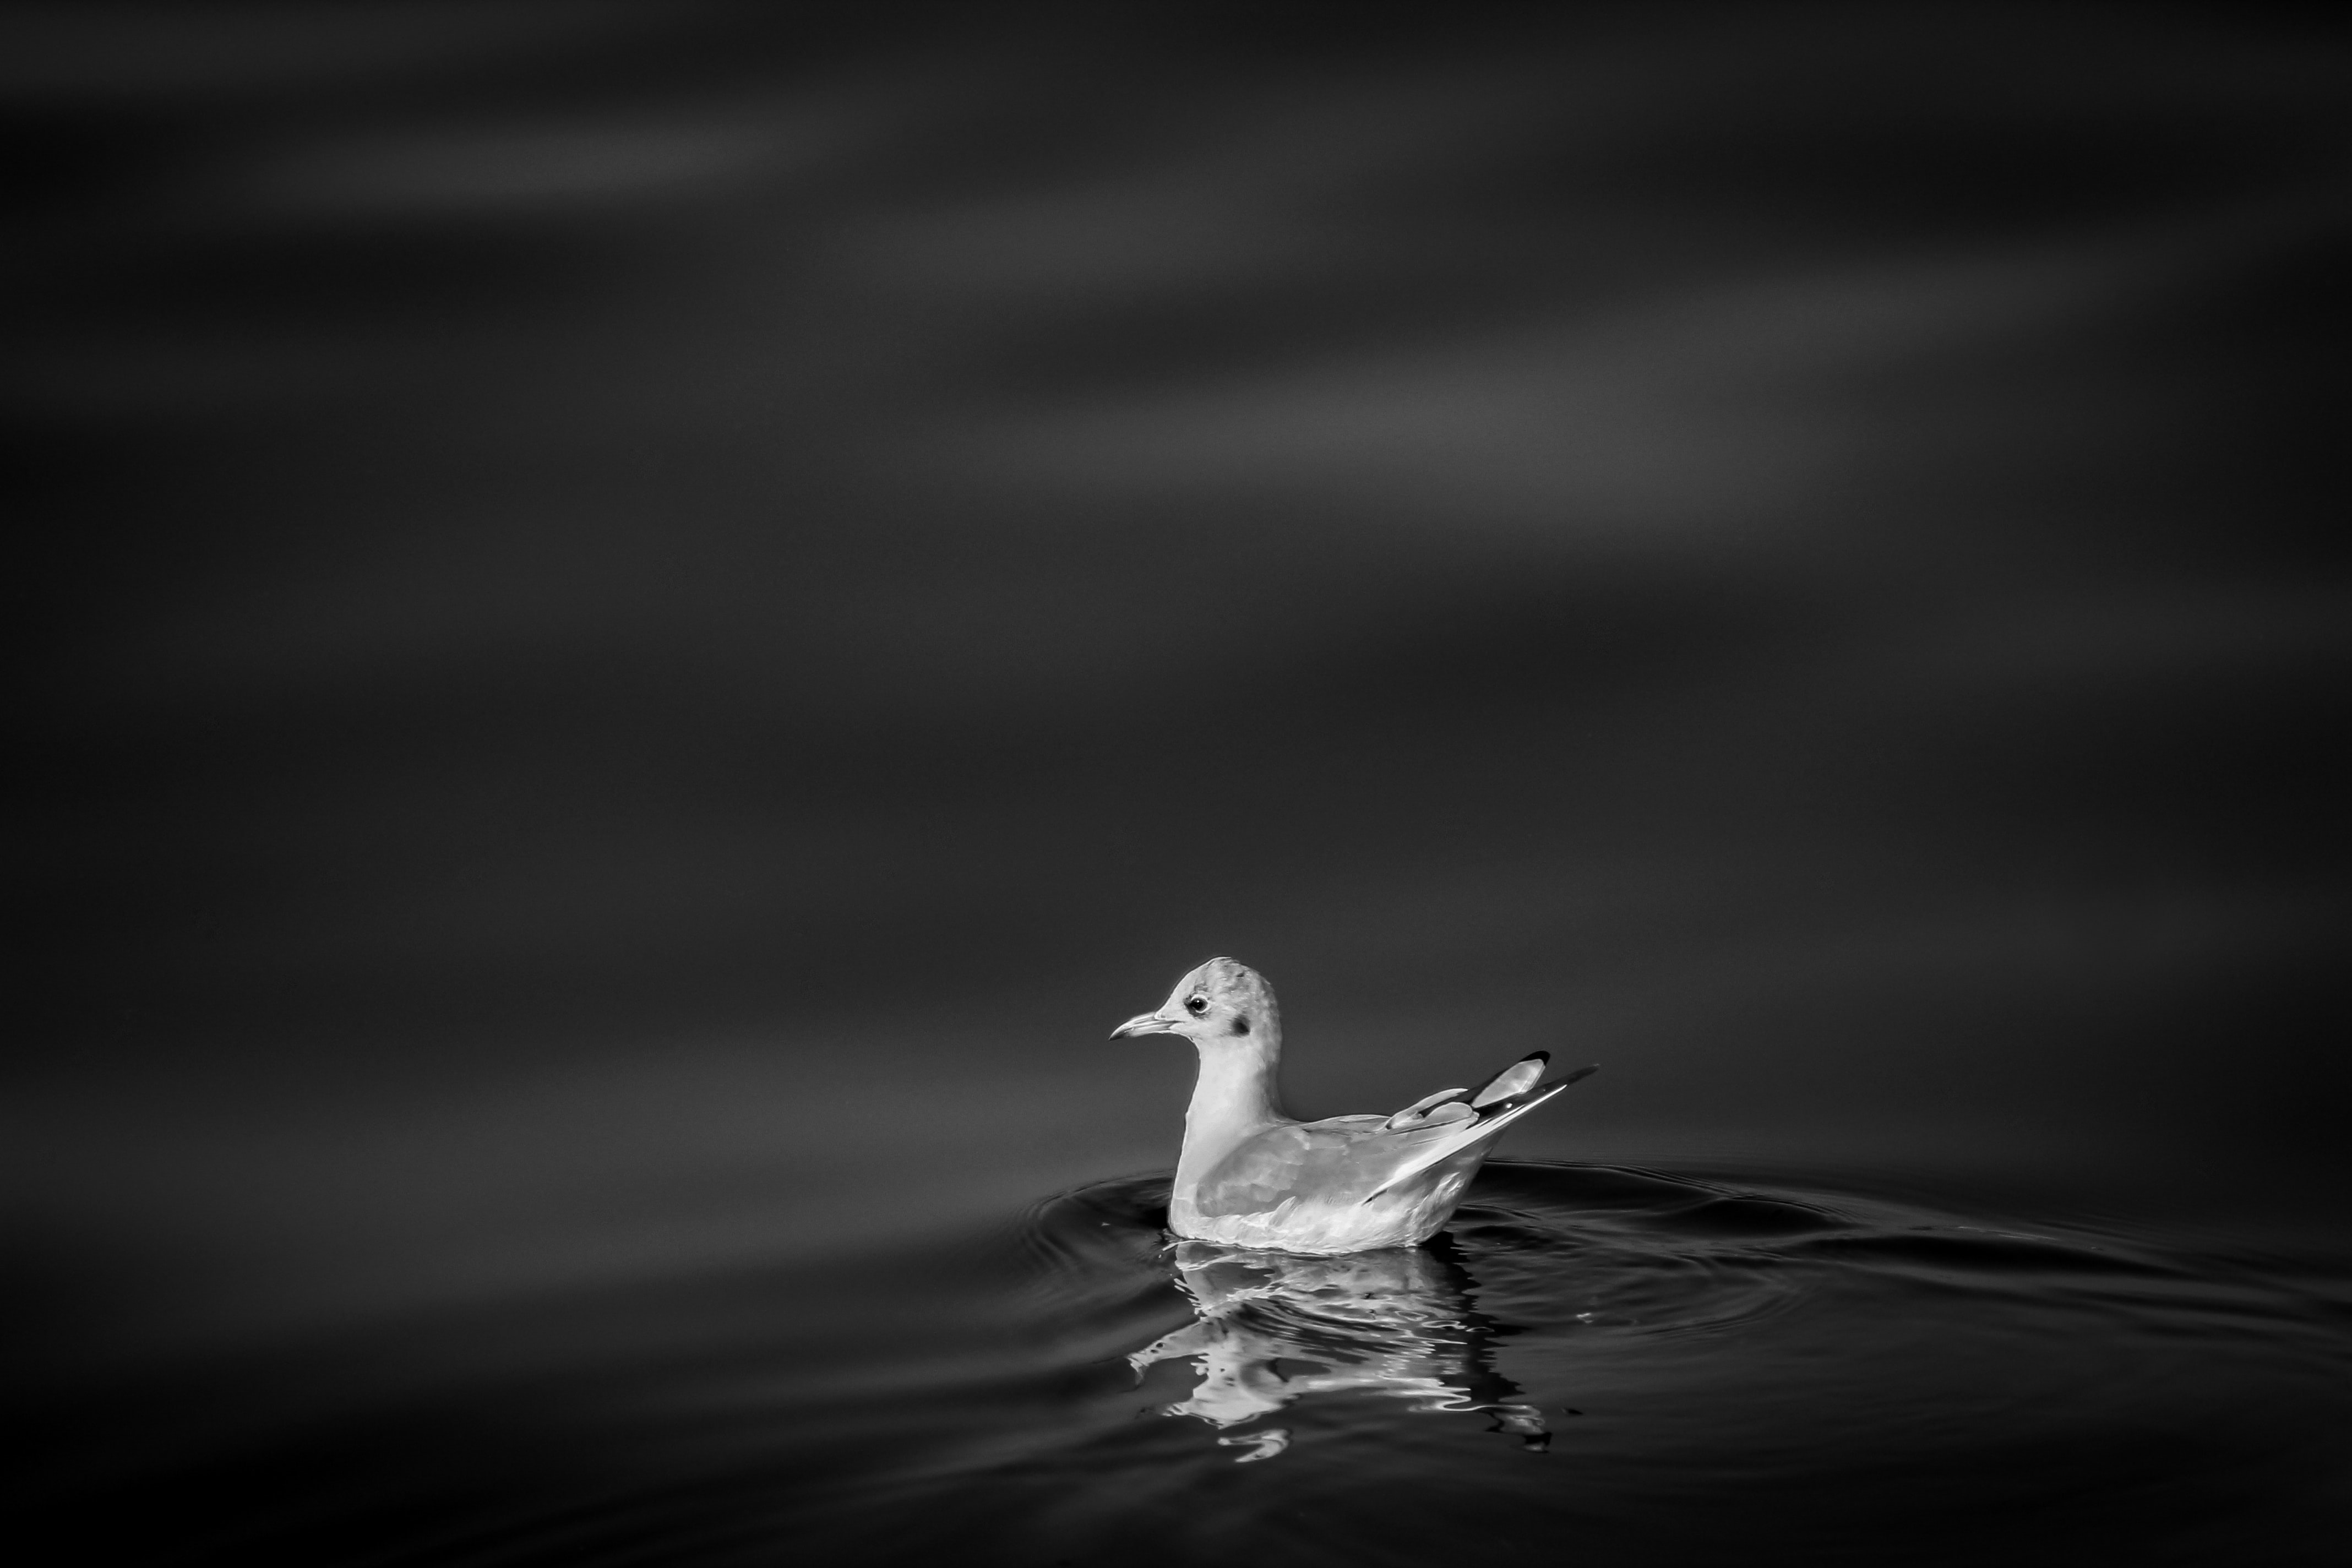 Black and white shot of baby duck floating in water with ripples